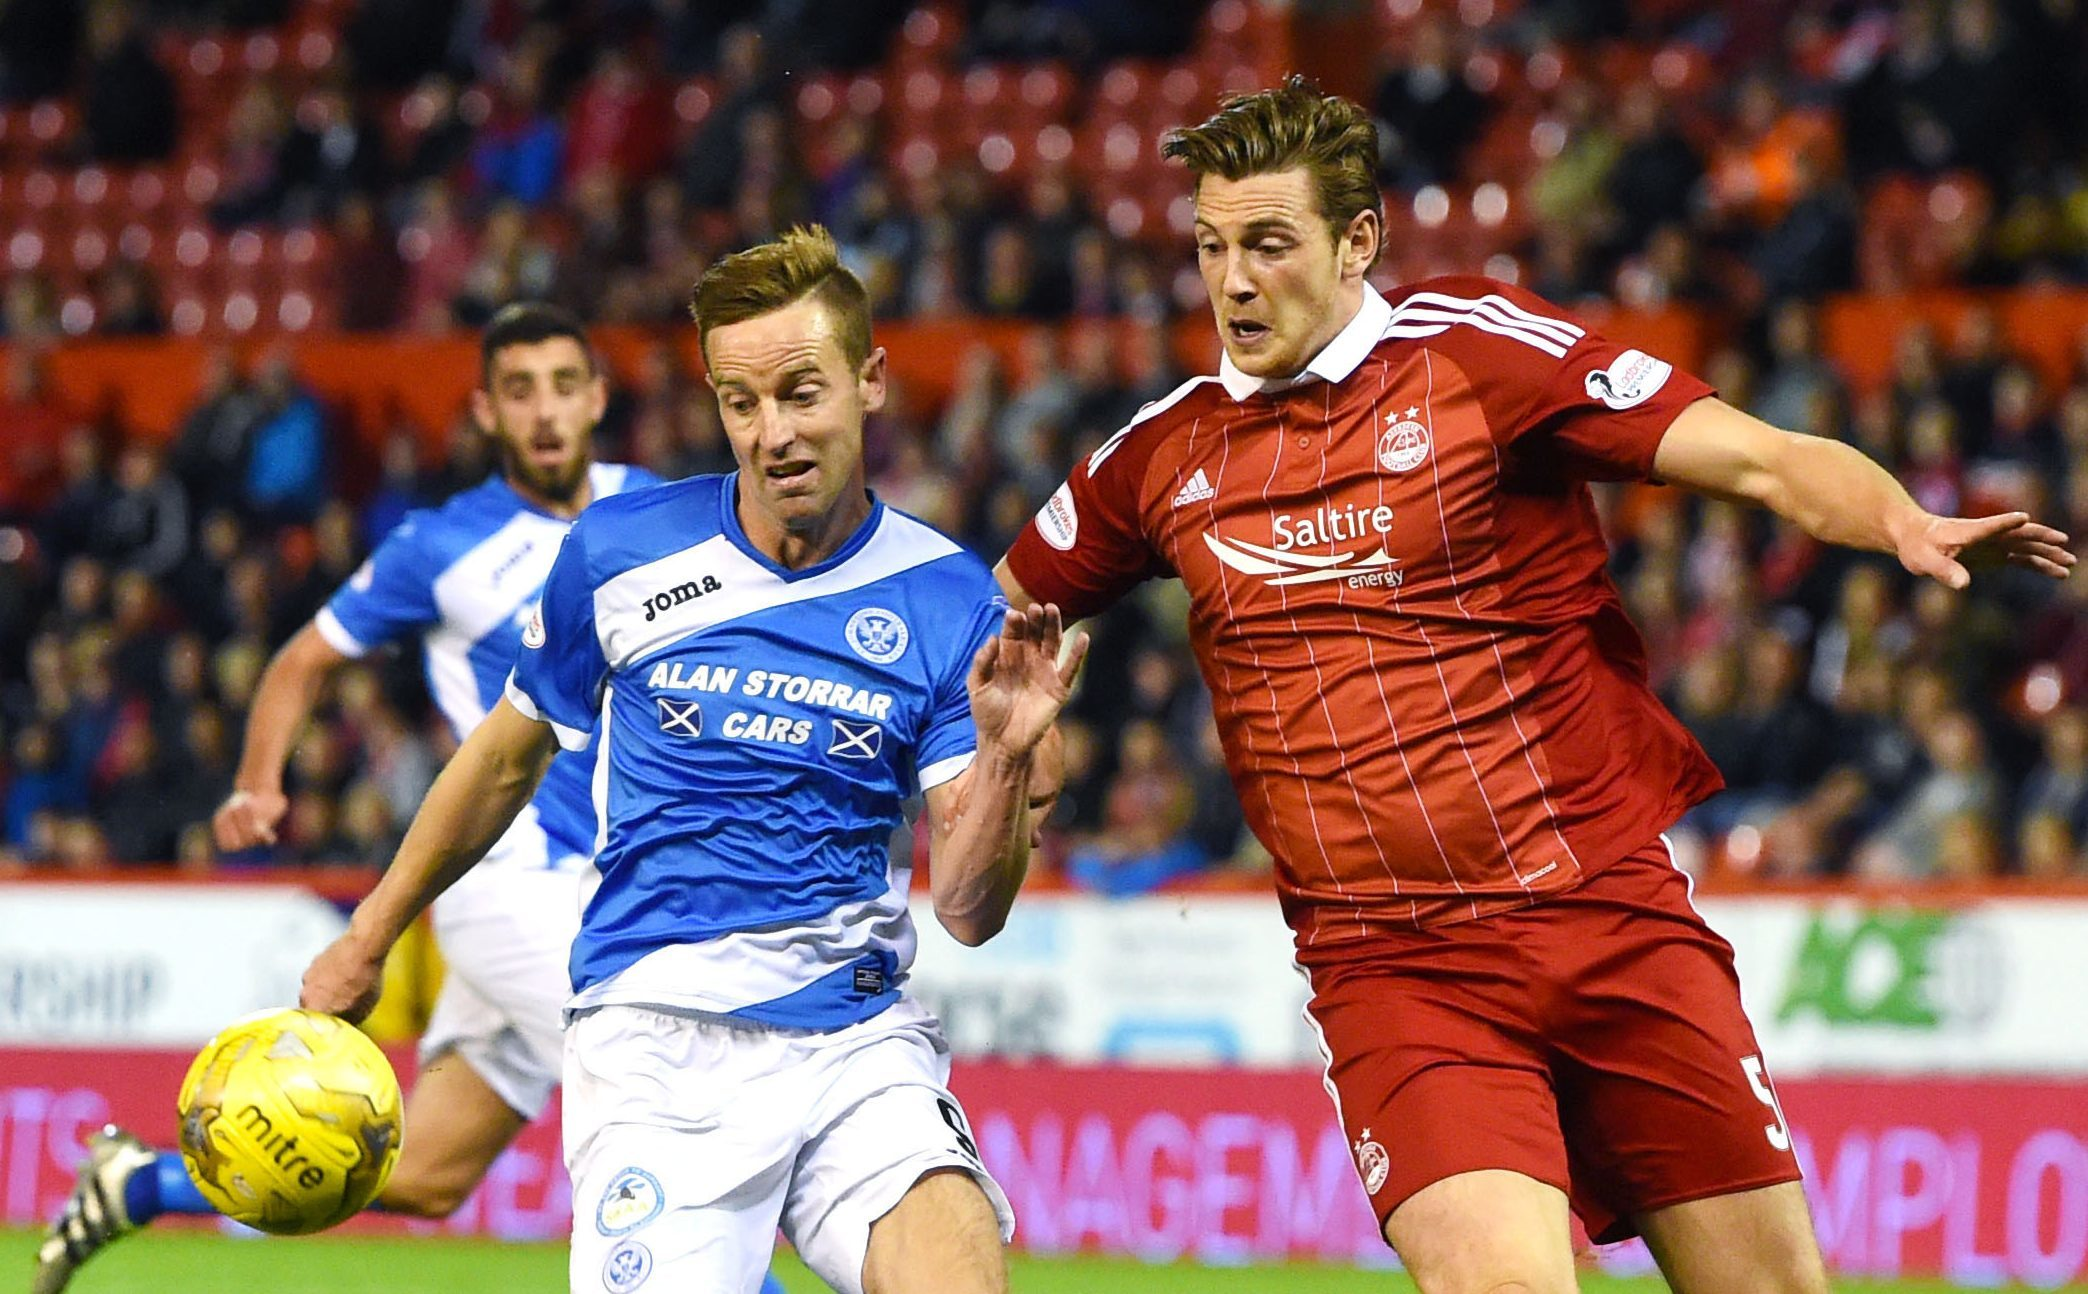 Steven MacLean playing against Aberdeen last season.